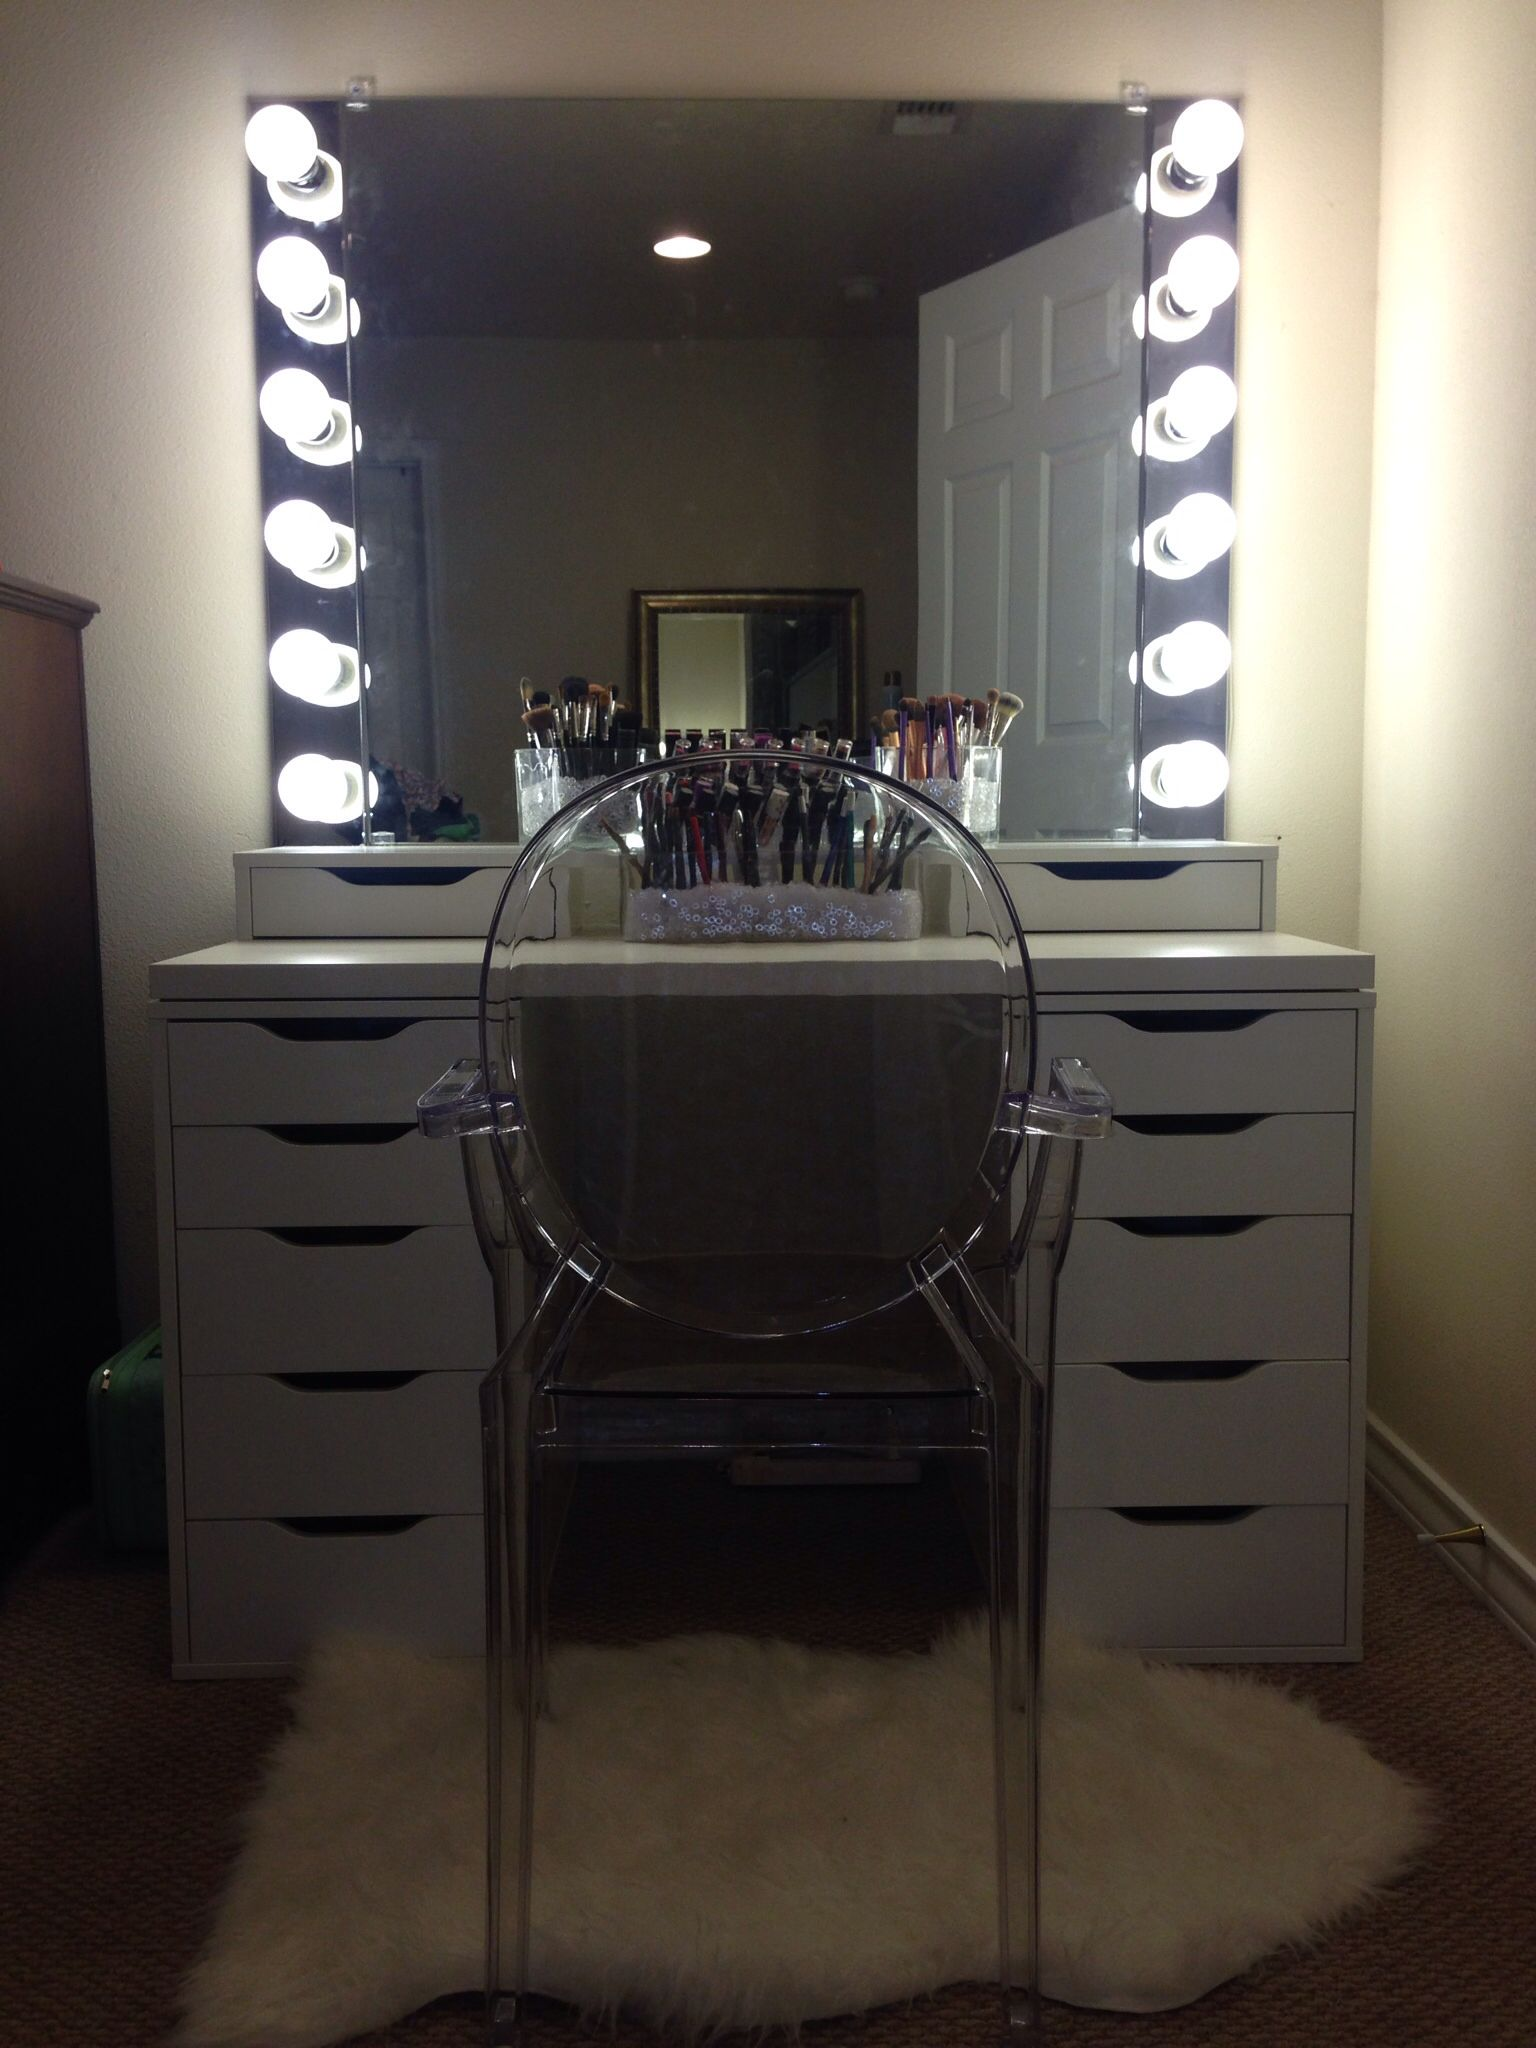 diy vanity mirror with lights for bathroom and makeup. Black Bedroom Furniture Sets. Home Design Ideas